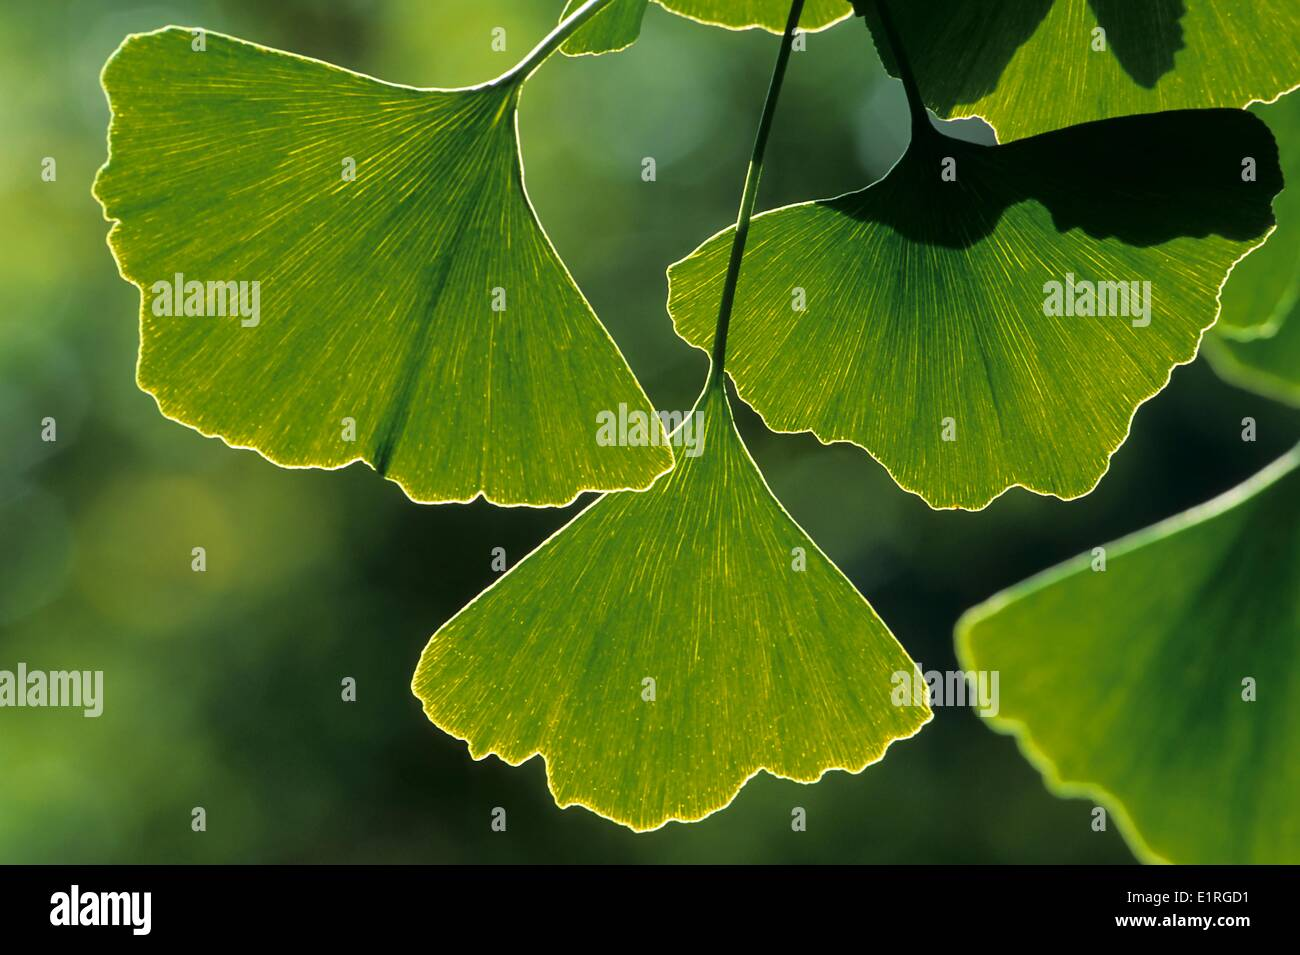 Gingko leaves in close-up - Stock Image